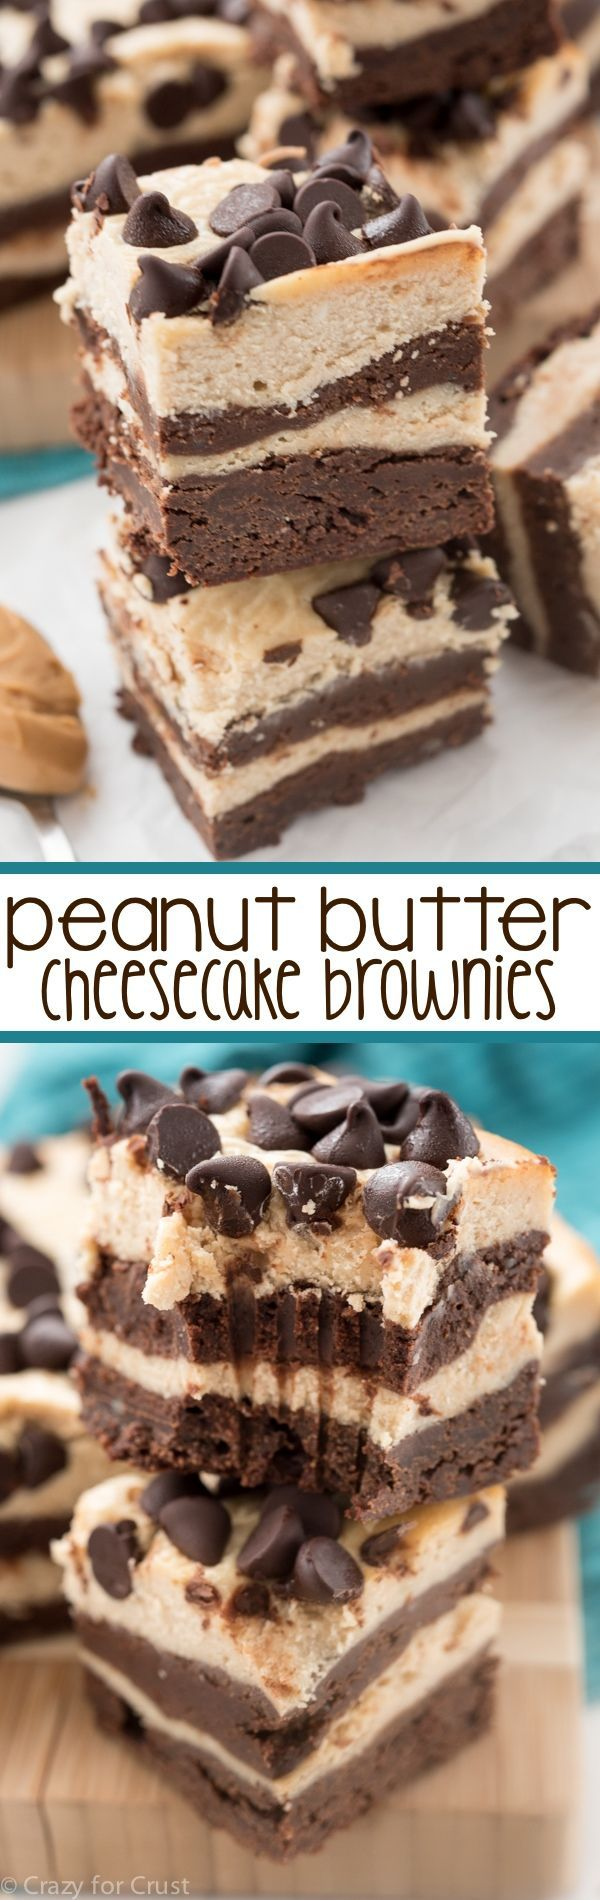 4 Layer Peanut Butter Cheesecake Brownies